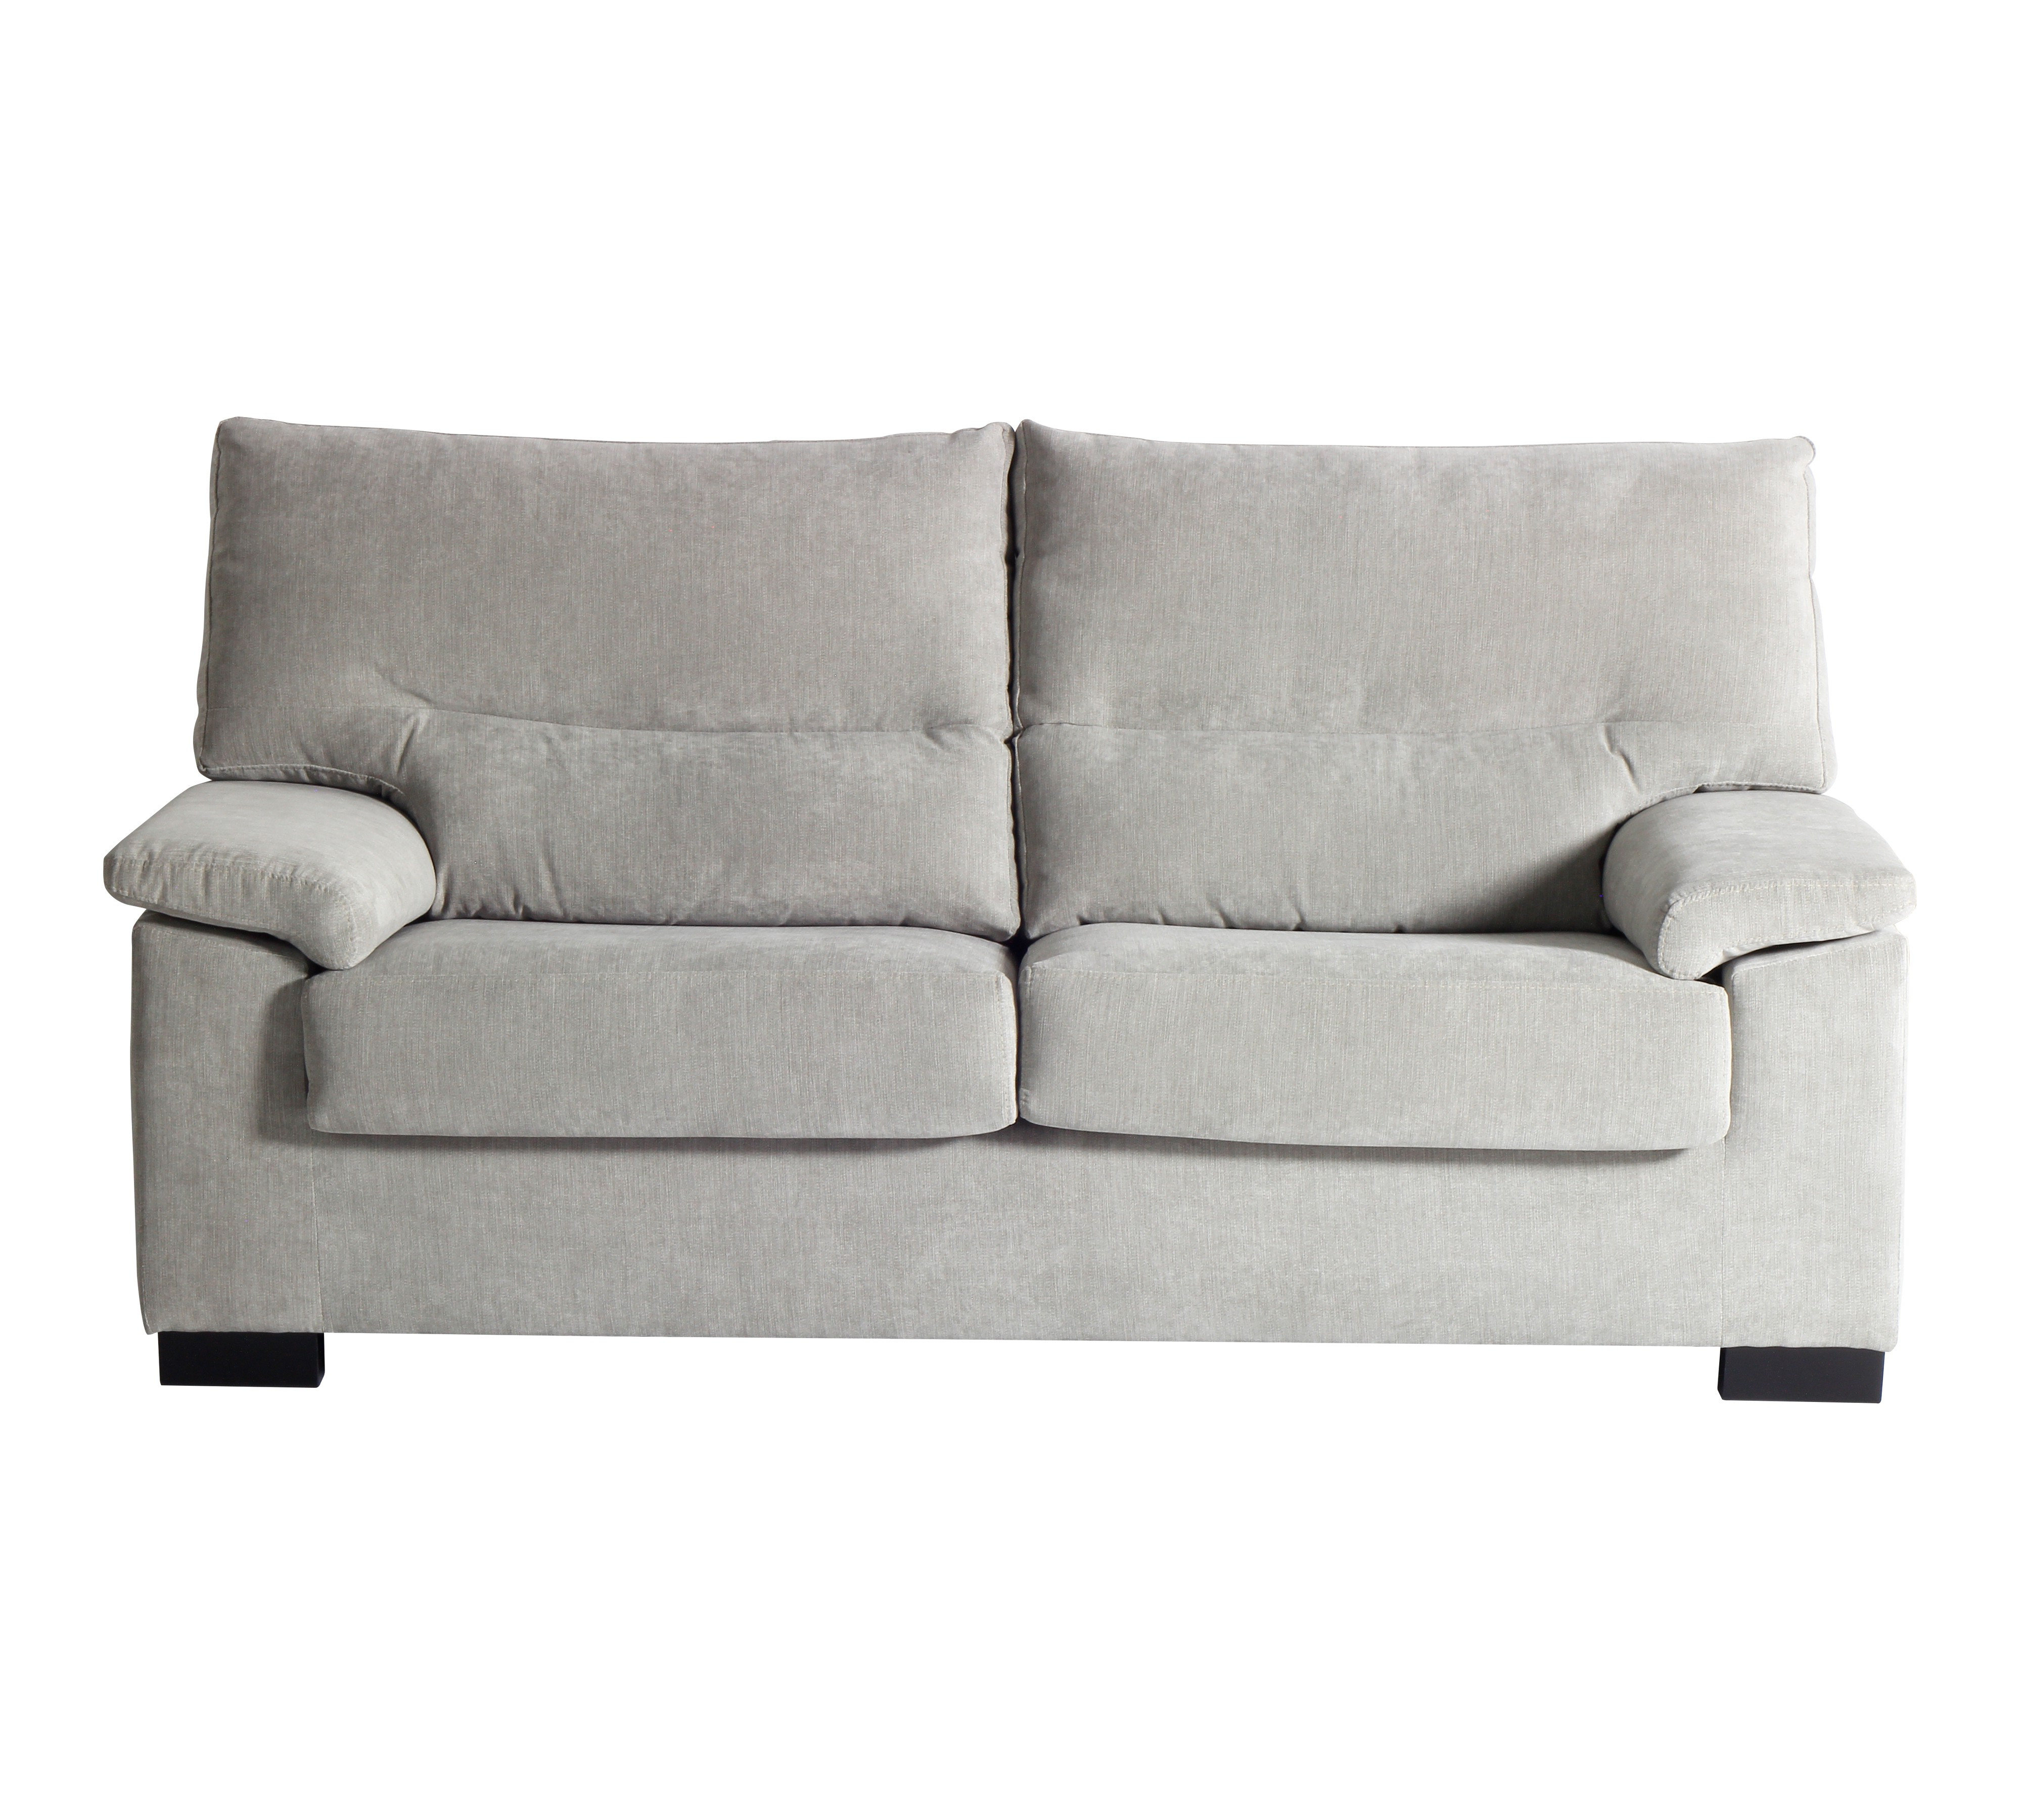 Fundas De sofa Ajustables Conforama Tqd3 Fundas De sofa Ajustables Conforama Fundas sofa Madrid Great Back